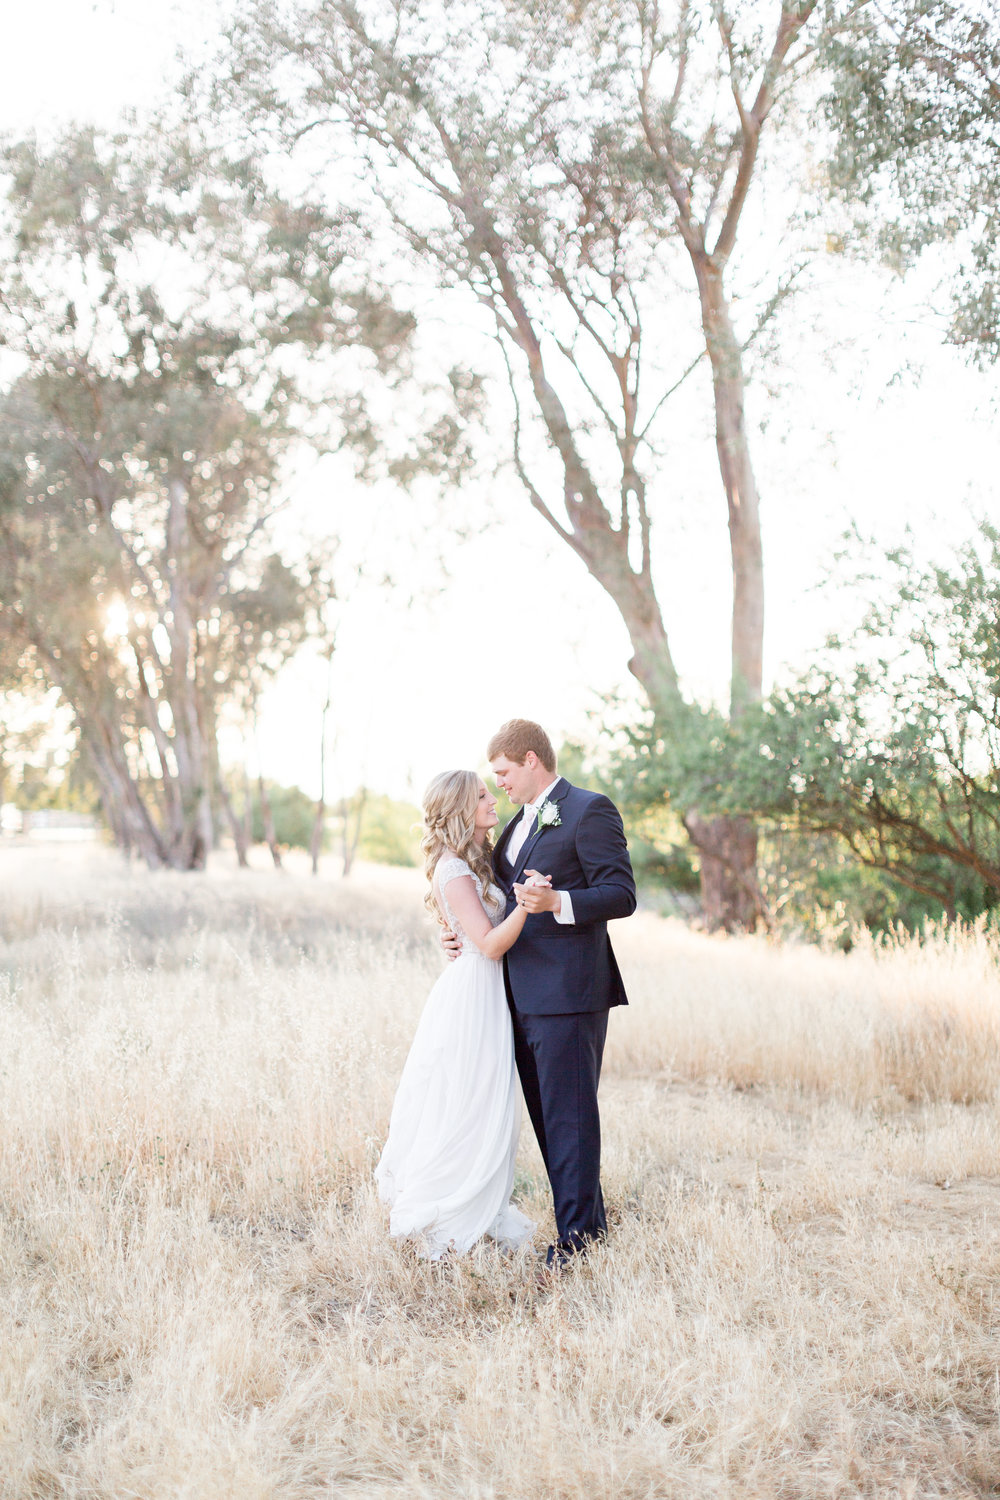 A-Private-Ranch-Northern-California-Wedding-1-2.jpg